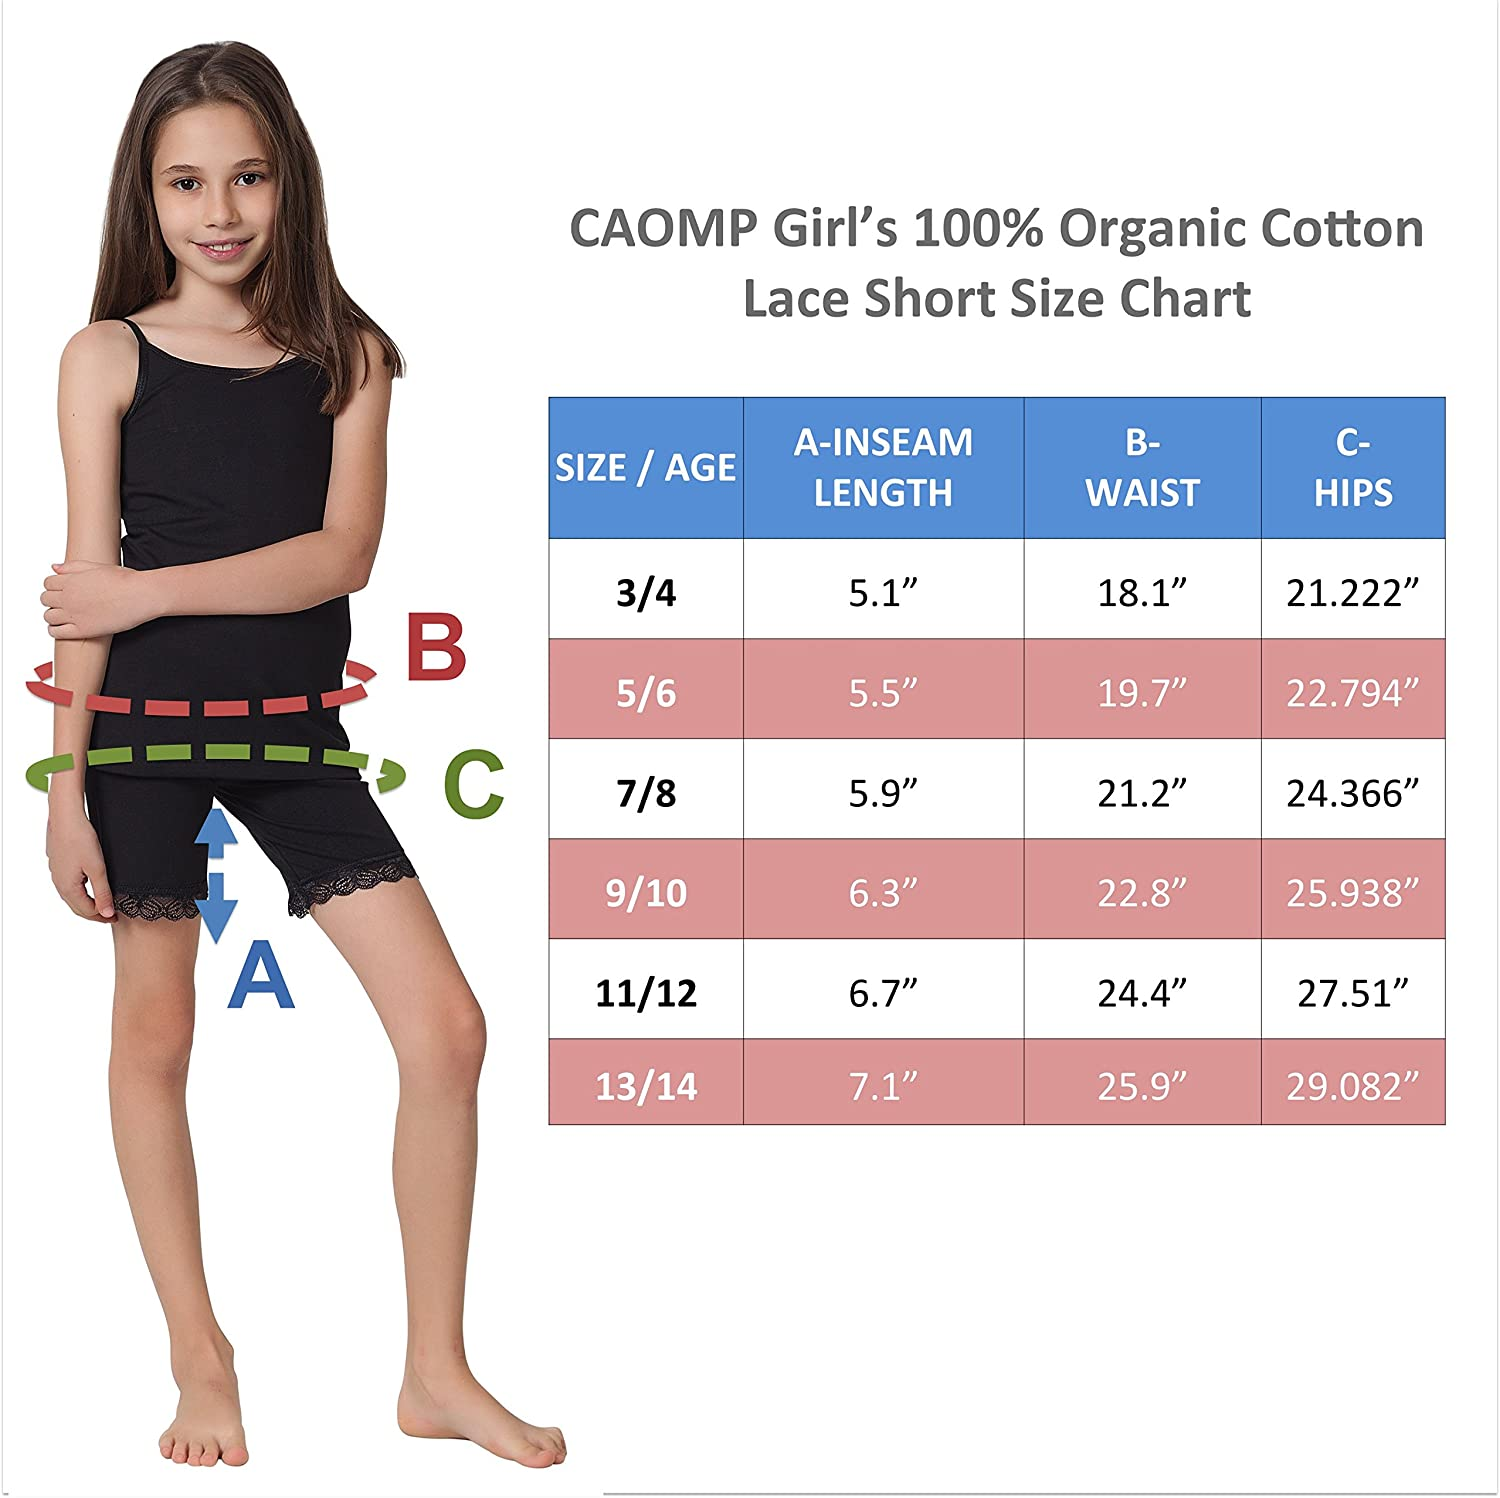 Tagless 3-Pack Certified Organic Cotton Spandex Underwear for Dresses CAOMP Girl/'s Bike Shorts